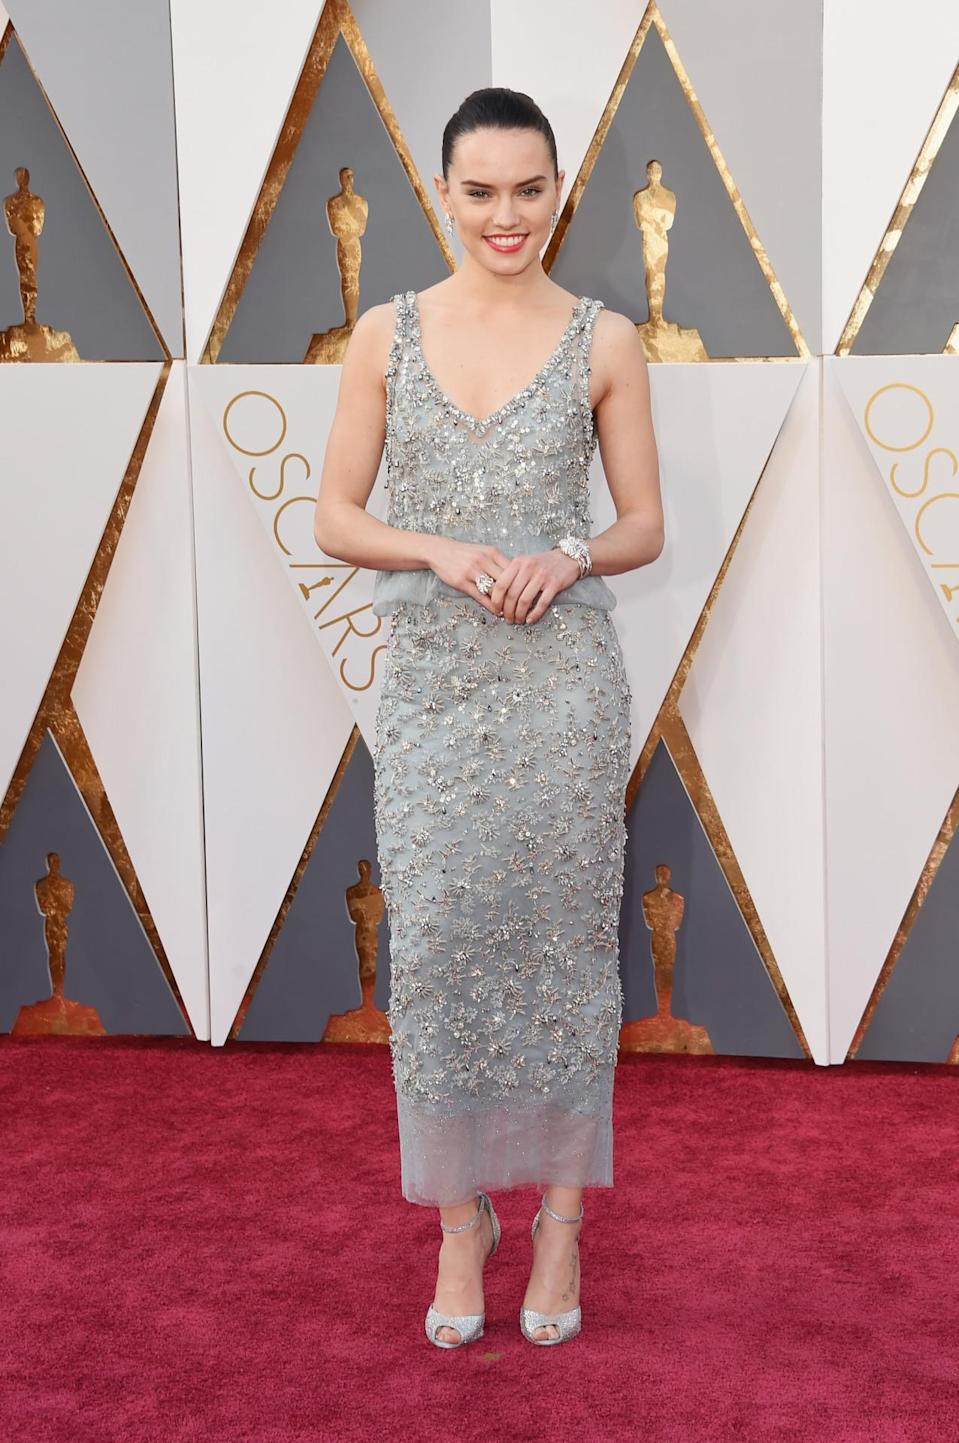 <p><i>Star Wars: The Force Awakens </i>star Daisy Ridley may be the newest newcomer on this list — but that isn't stopping her from wearing one of the most glam dresses on the Oscars red carpet. The fearless 23-year-old Brit has experimented with frocks by Chloé, Mary Katrantzou, and Dior. And for her turn presenting at the Academy Awards? Chanel Couture. <i>(Photo: Getty)</i></p>